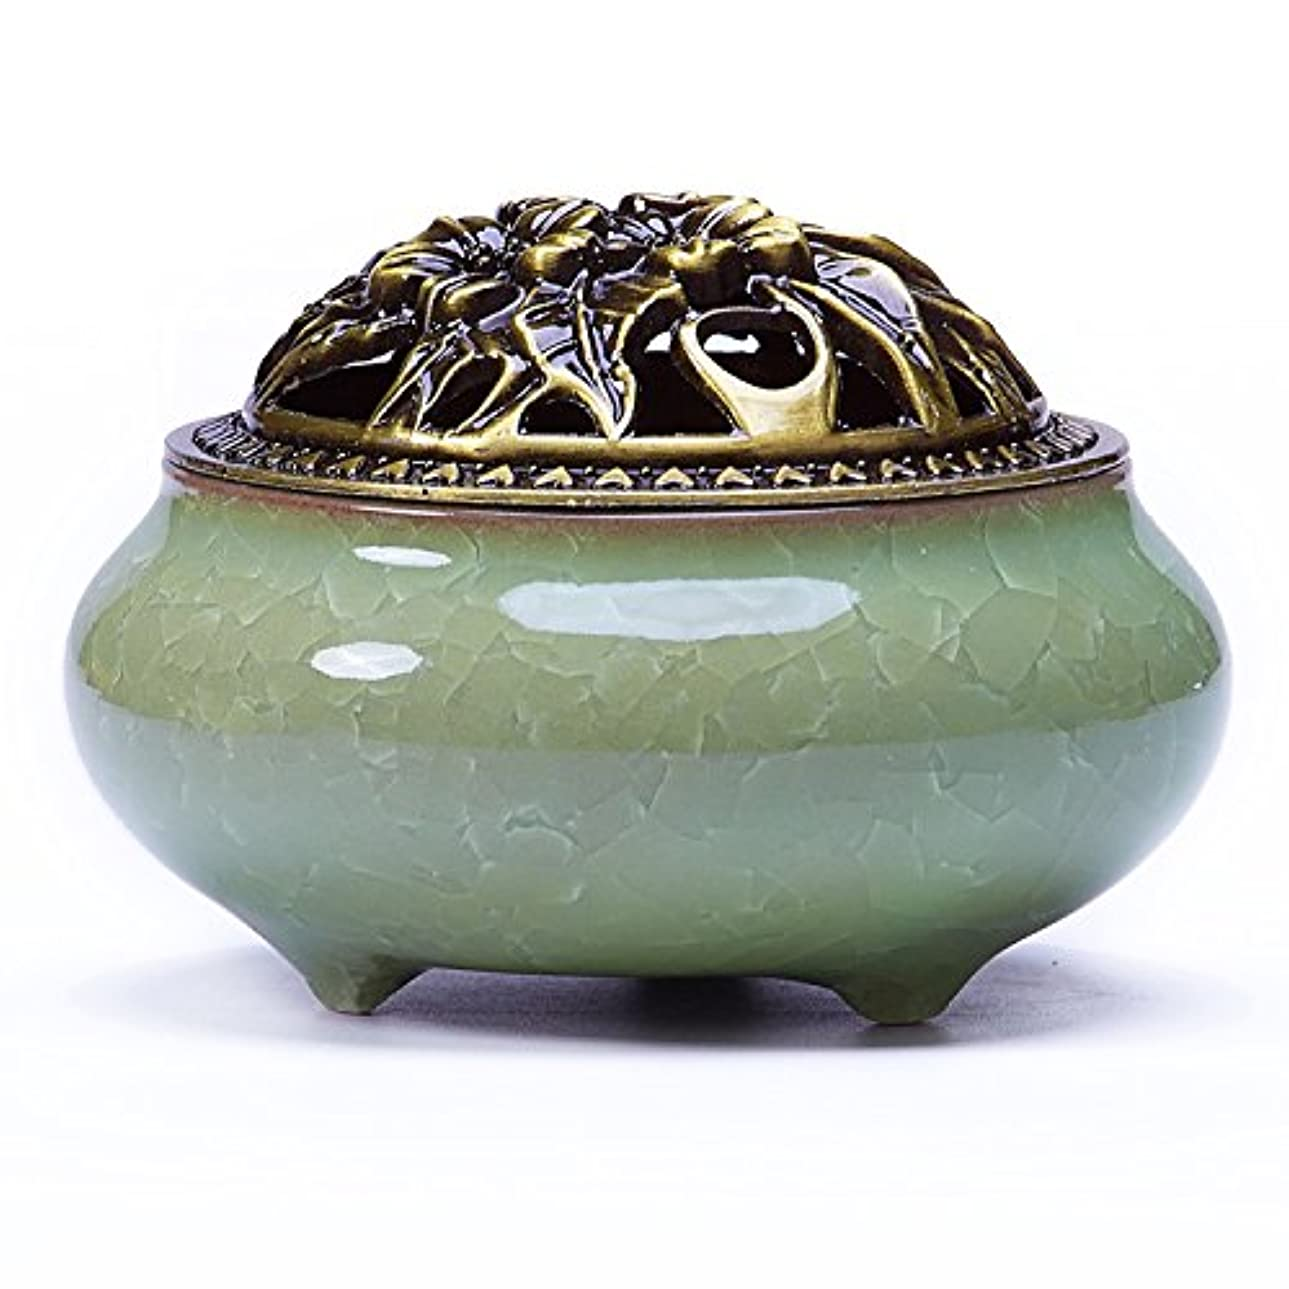 アクセル側記録UoonハンドメイドCone Incense Burner with真鍮Calabashホルダーfor Stick Incense and Coin Incense UOON-BL001